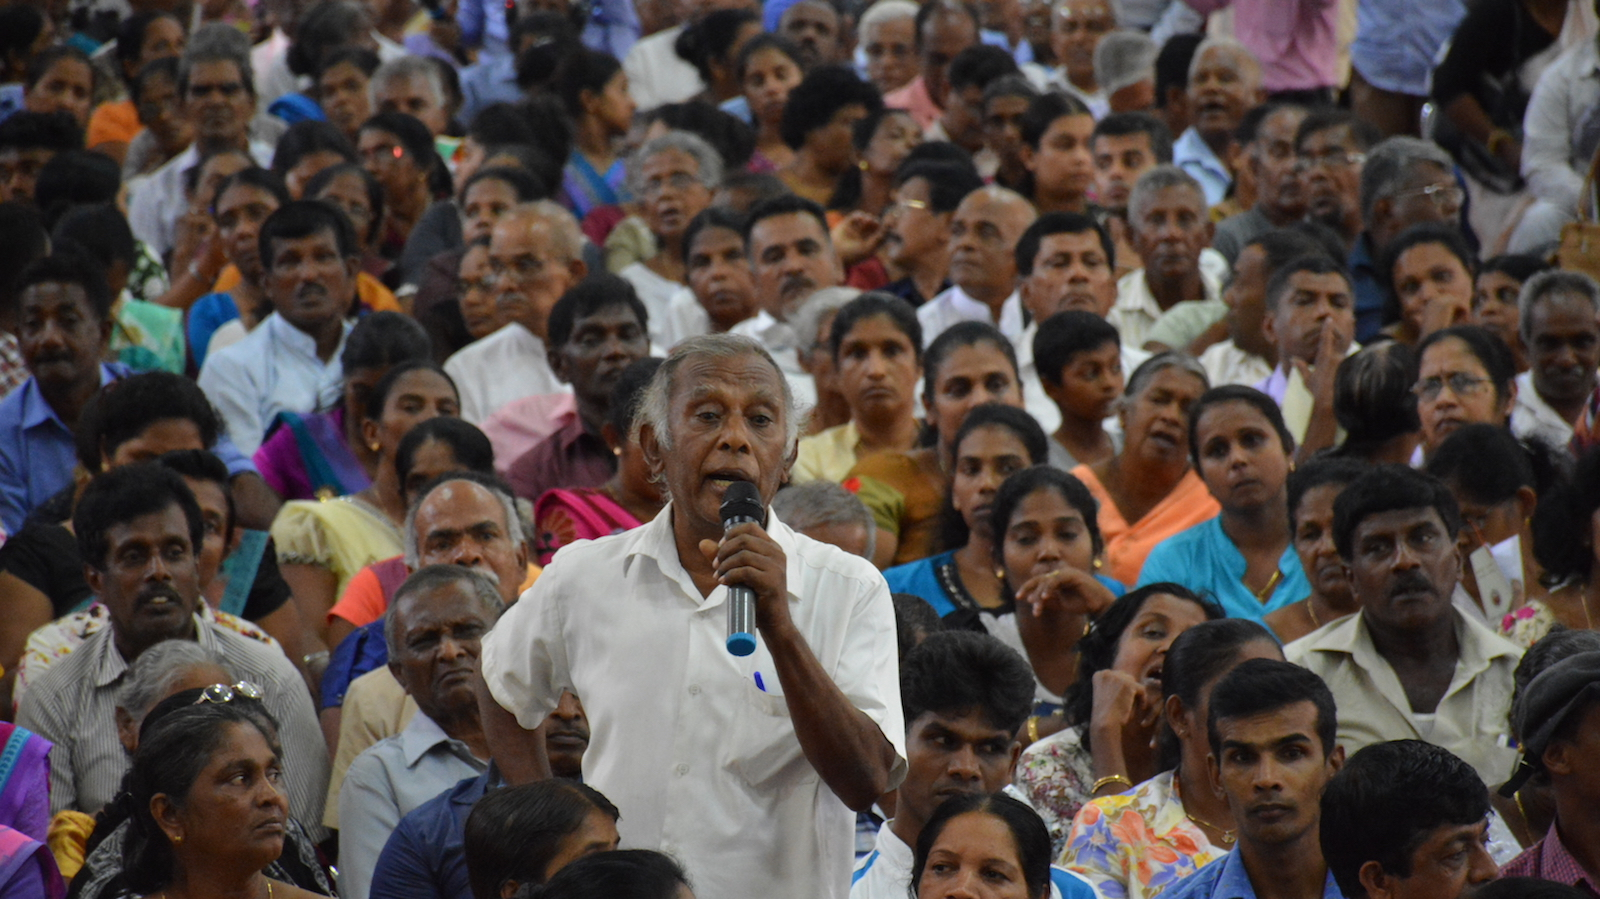 Man speaking in crowd at a Sarvodaya Shramadana Movement